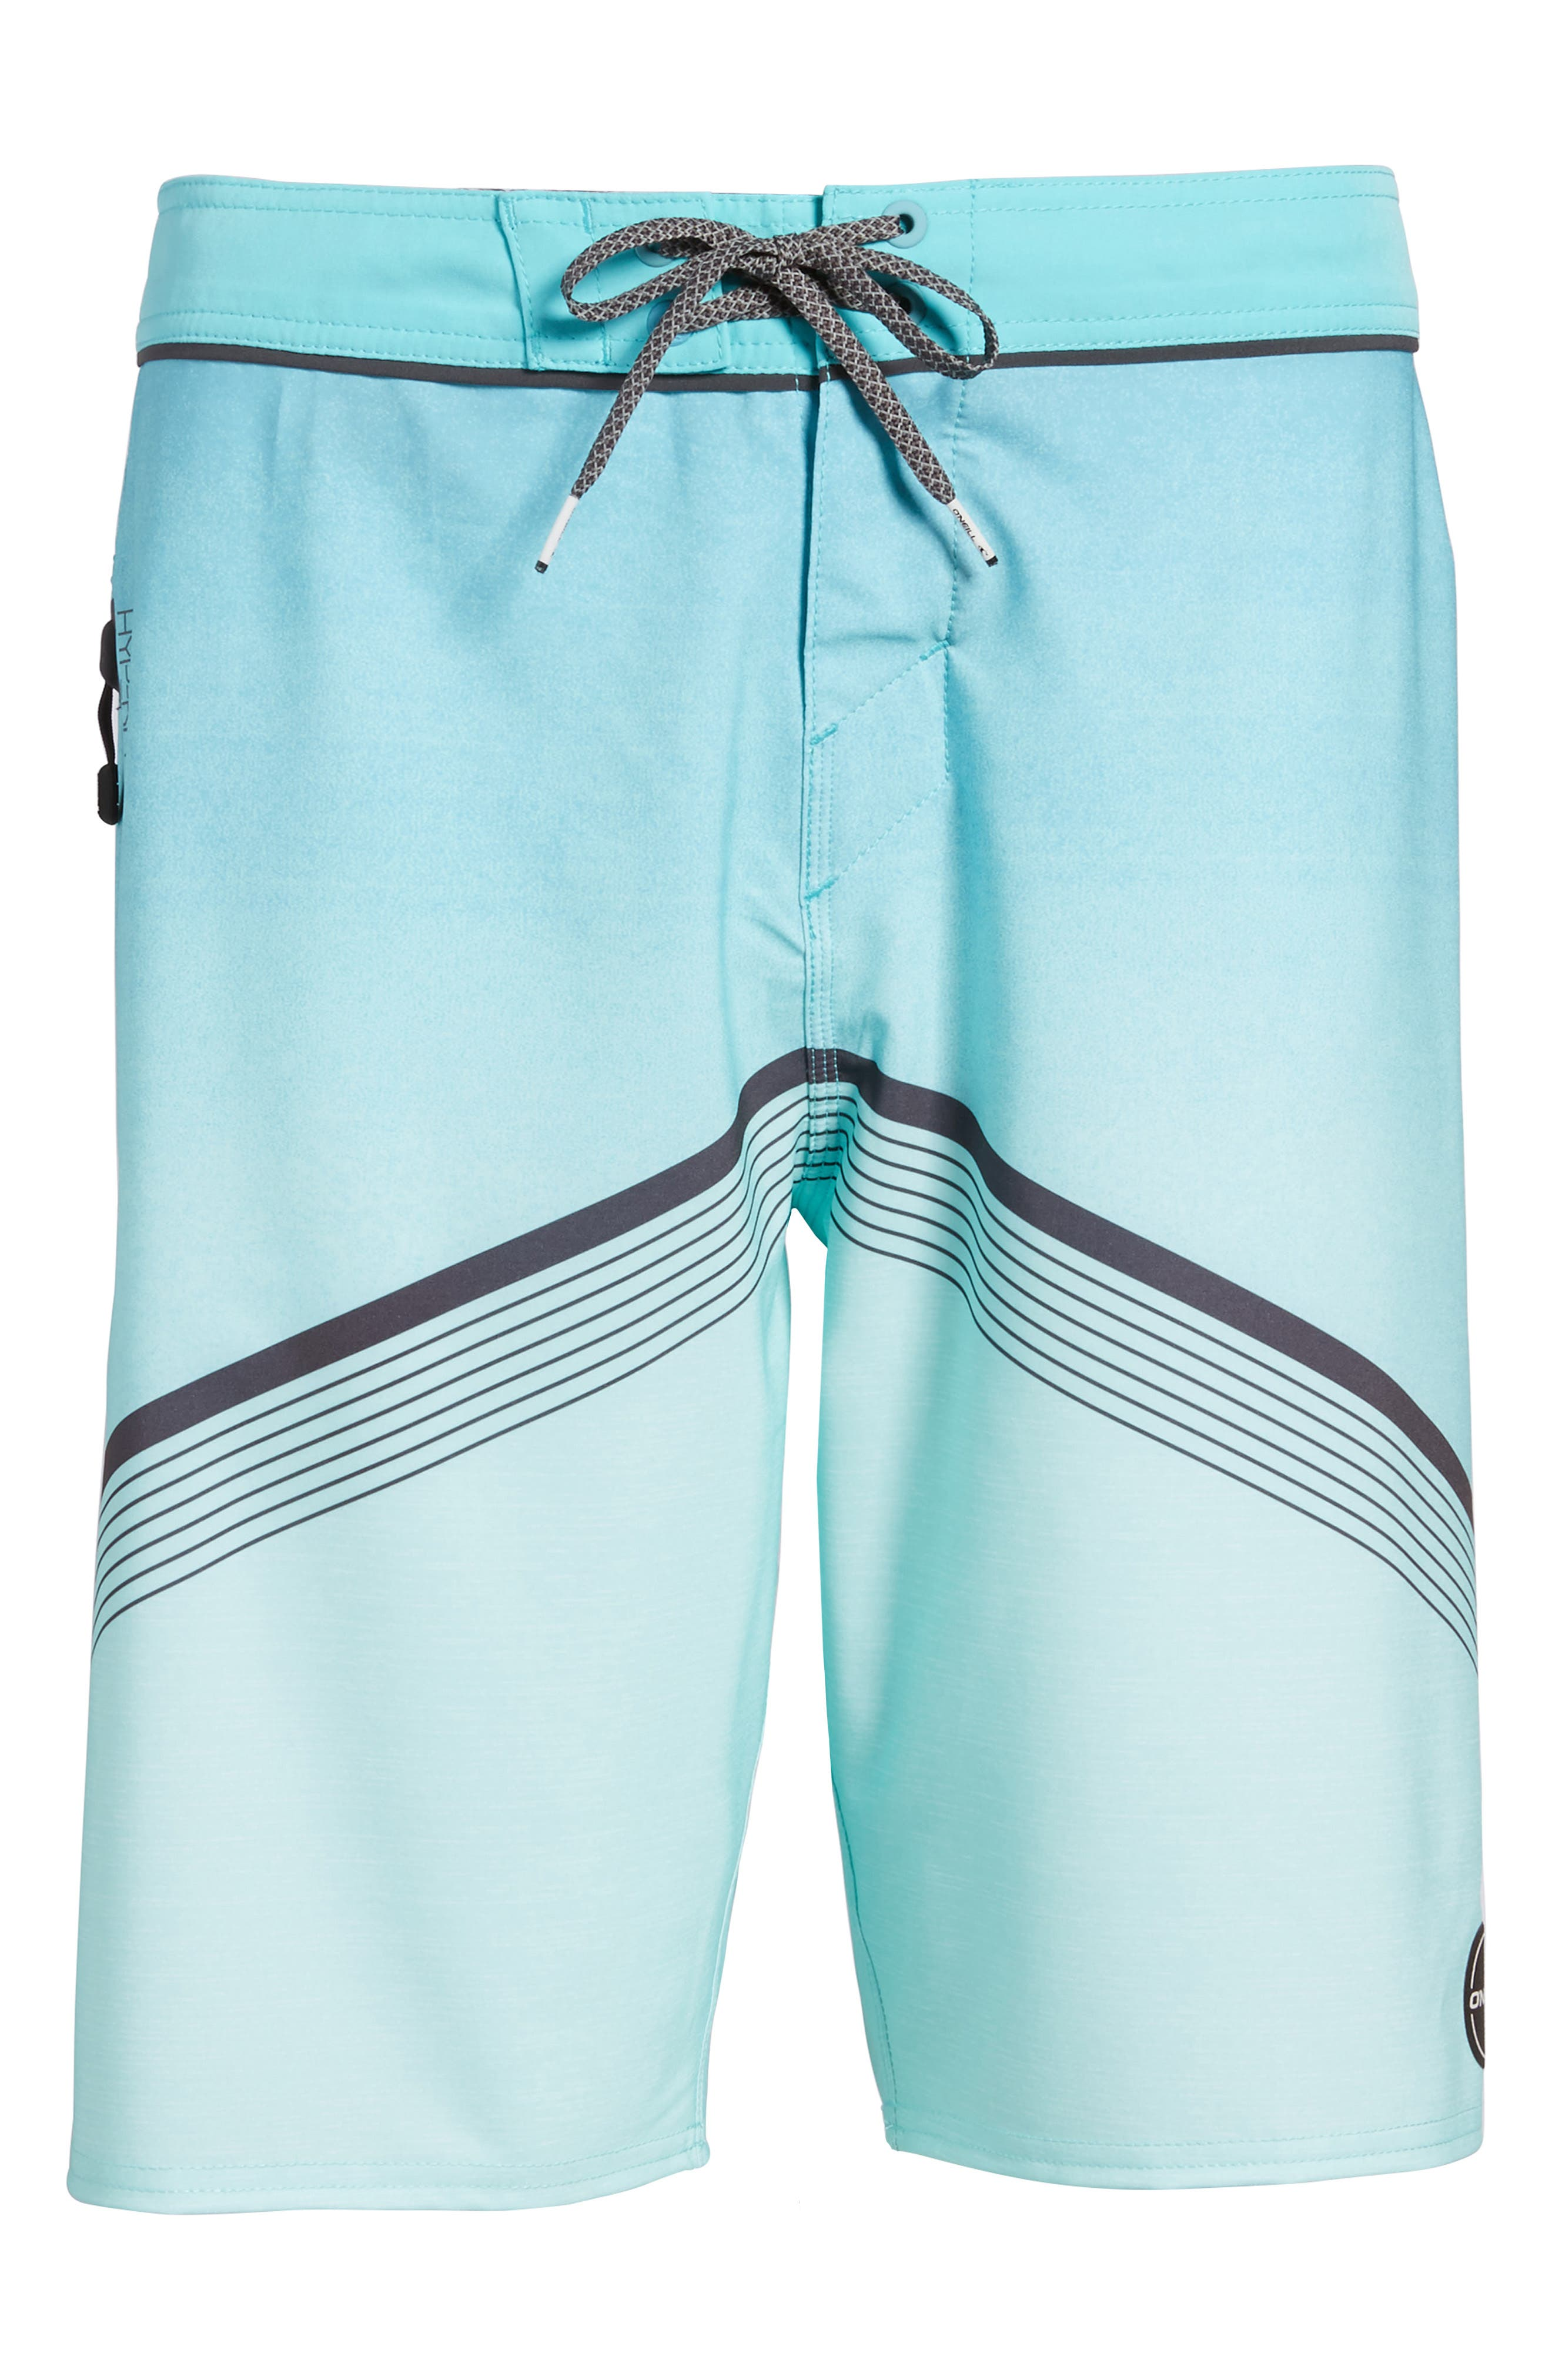 Hyperfreak Stretch Board Shorts,                             Alternate thumbnail 39, color,